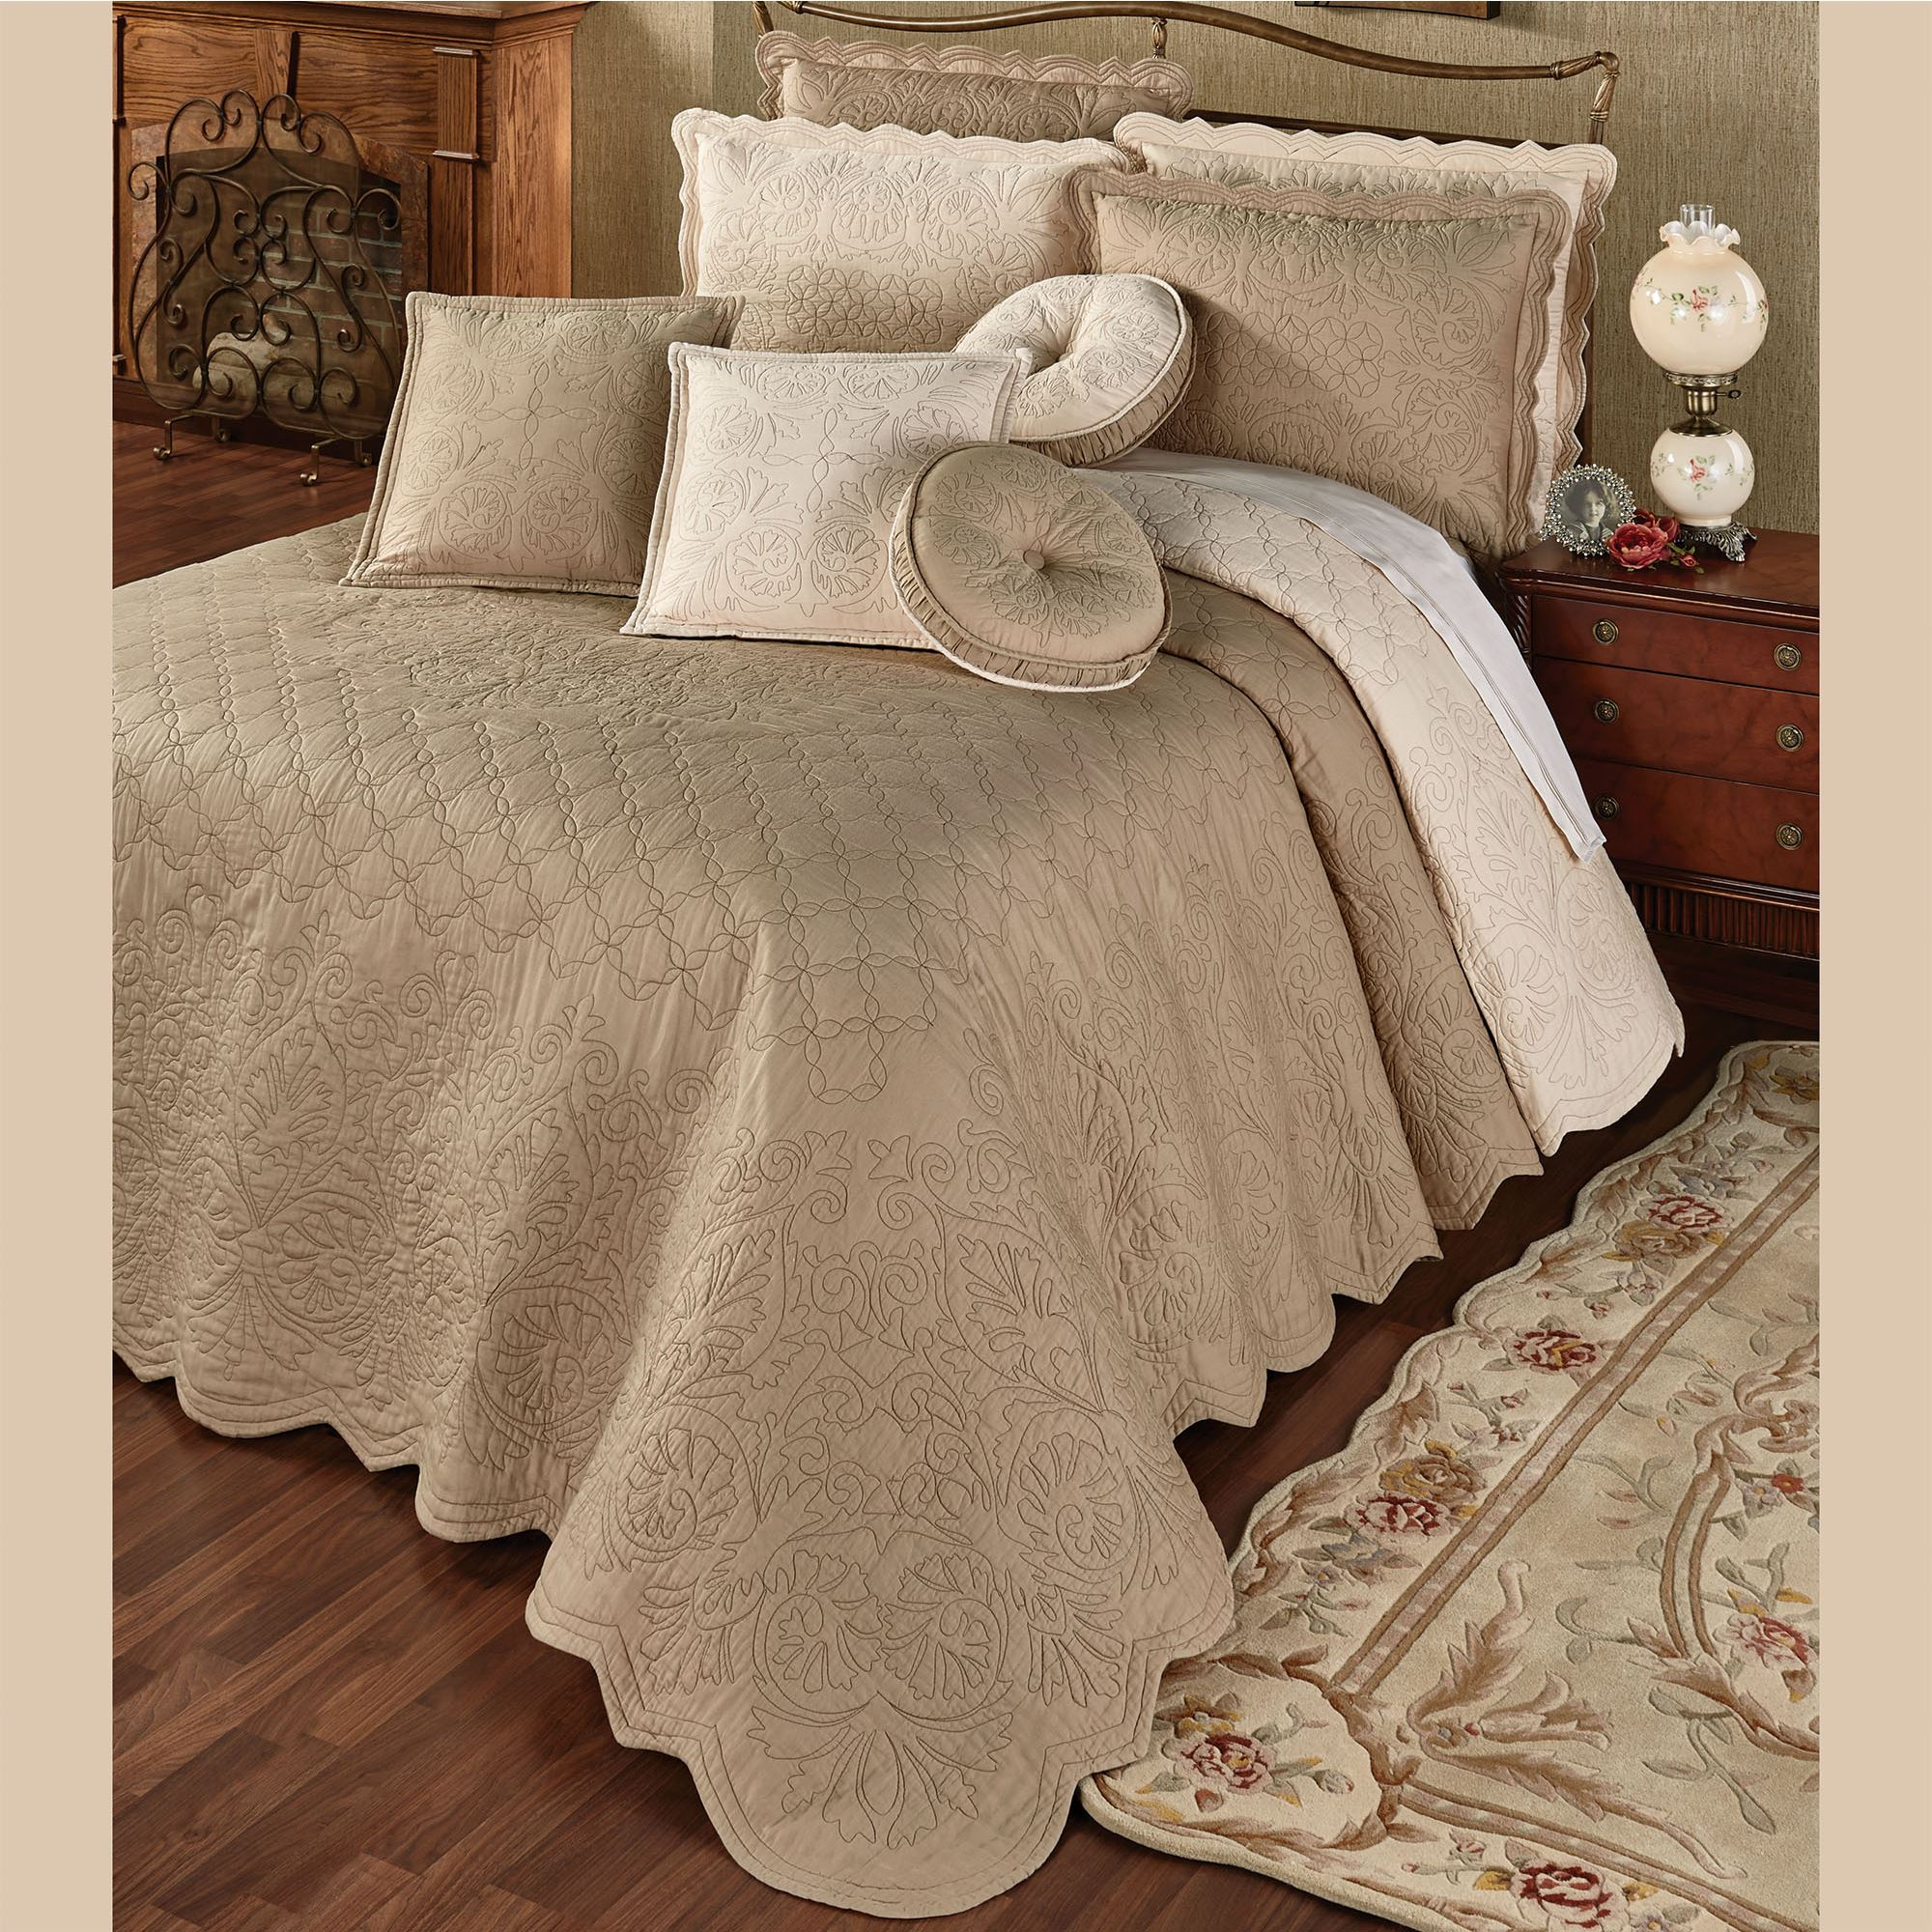 Everafter Almond Reversible Quilted Oversized Bedspread